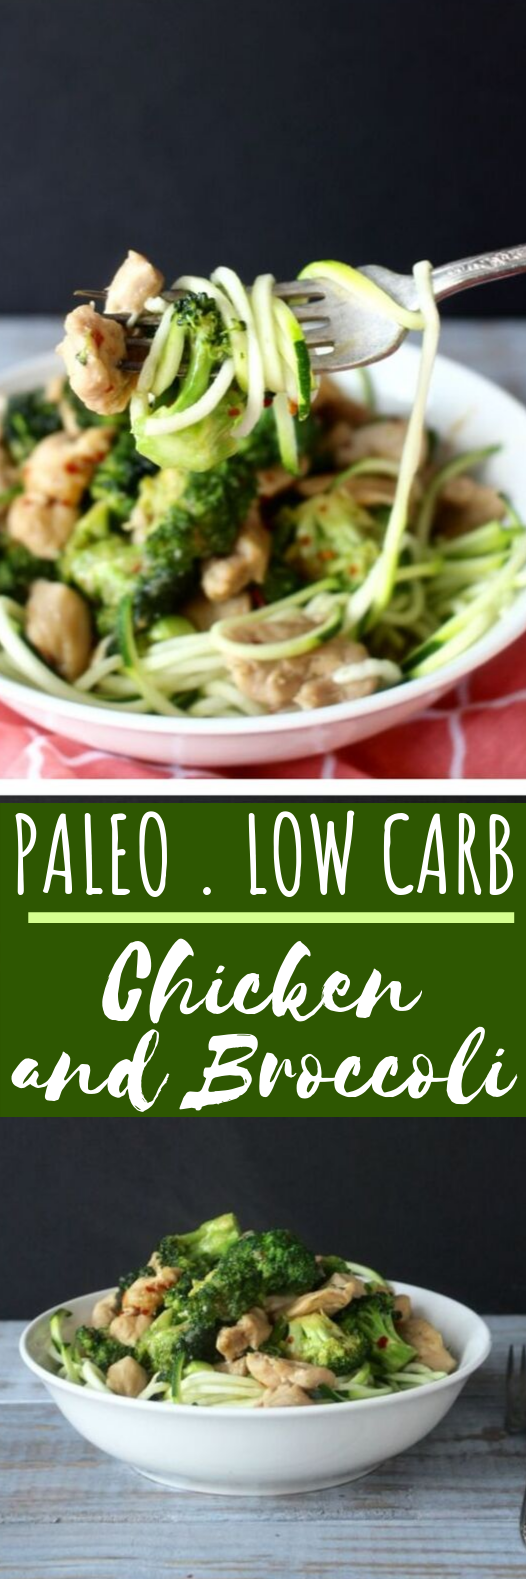 Paleo Chicken and Broccoli #healthy #lowcarb